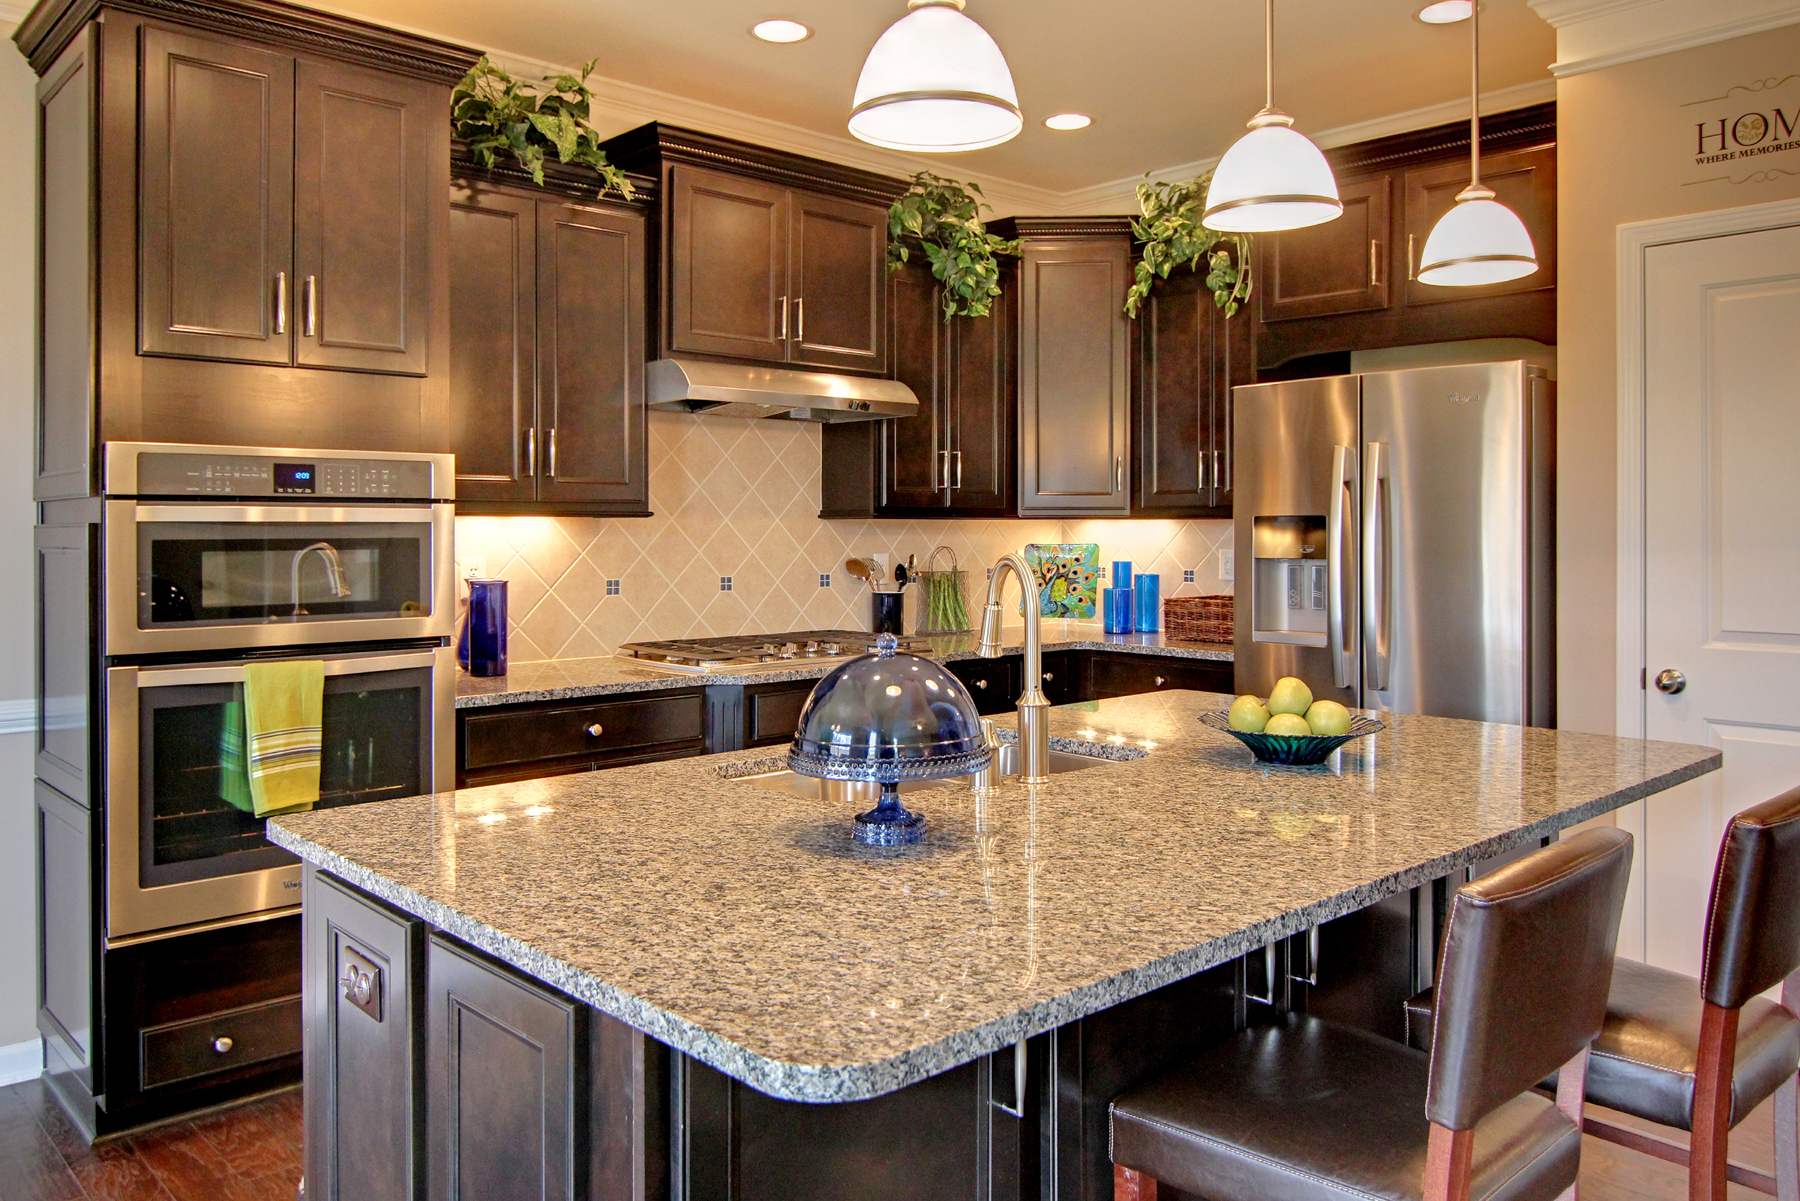 counter height kitchen island remodeling on a budget design  bar or